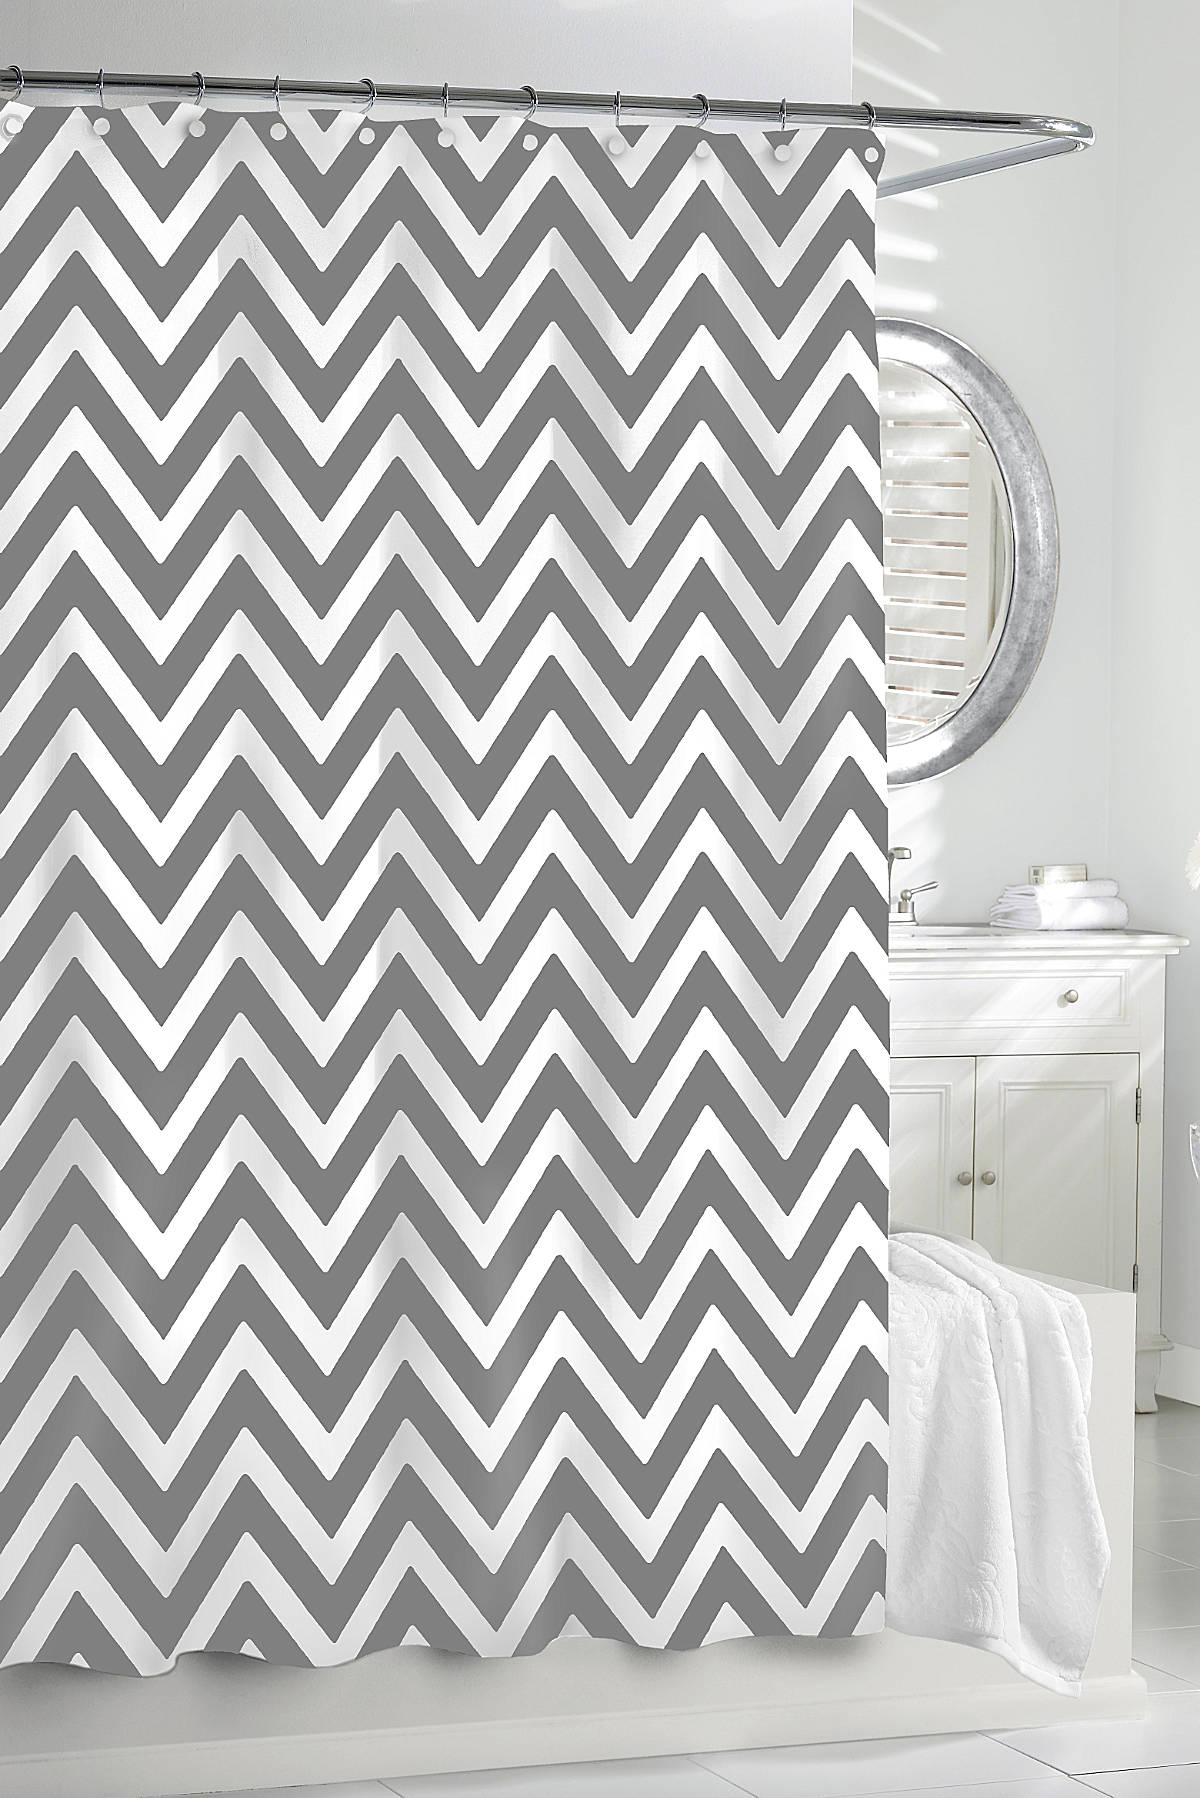 Magnificent Ideas Gray Chevron Shower Curtain Well Suited Design within size 1200 X 1798